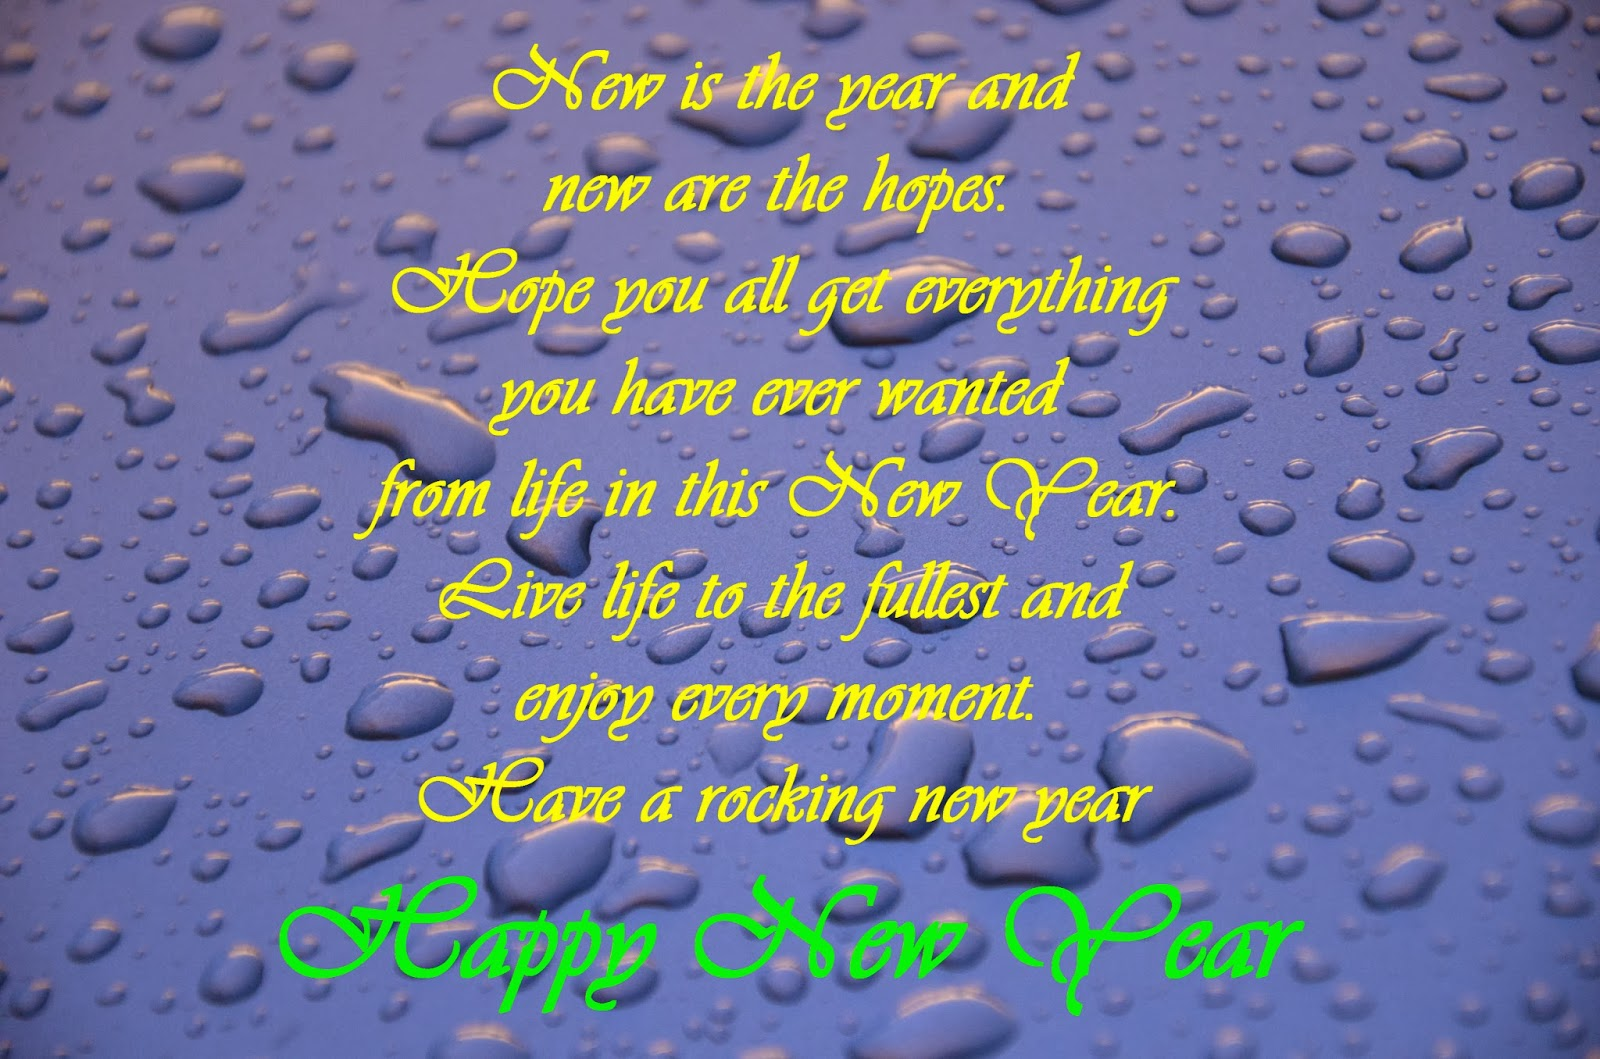 Happy New Year Facebook Status 13   Best New Year Wishes Happy New Year Facebook Status 13